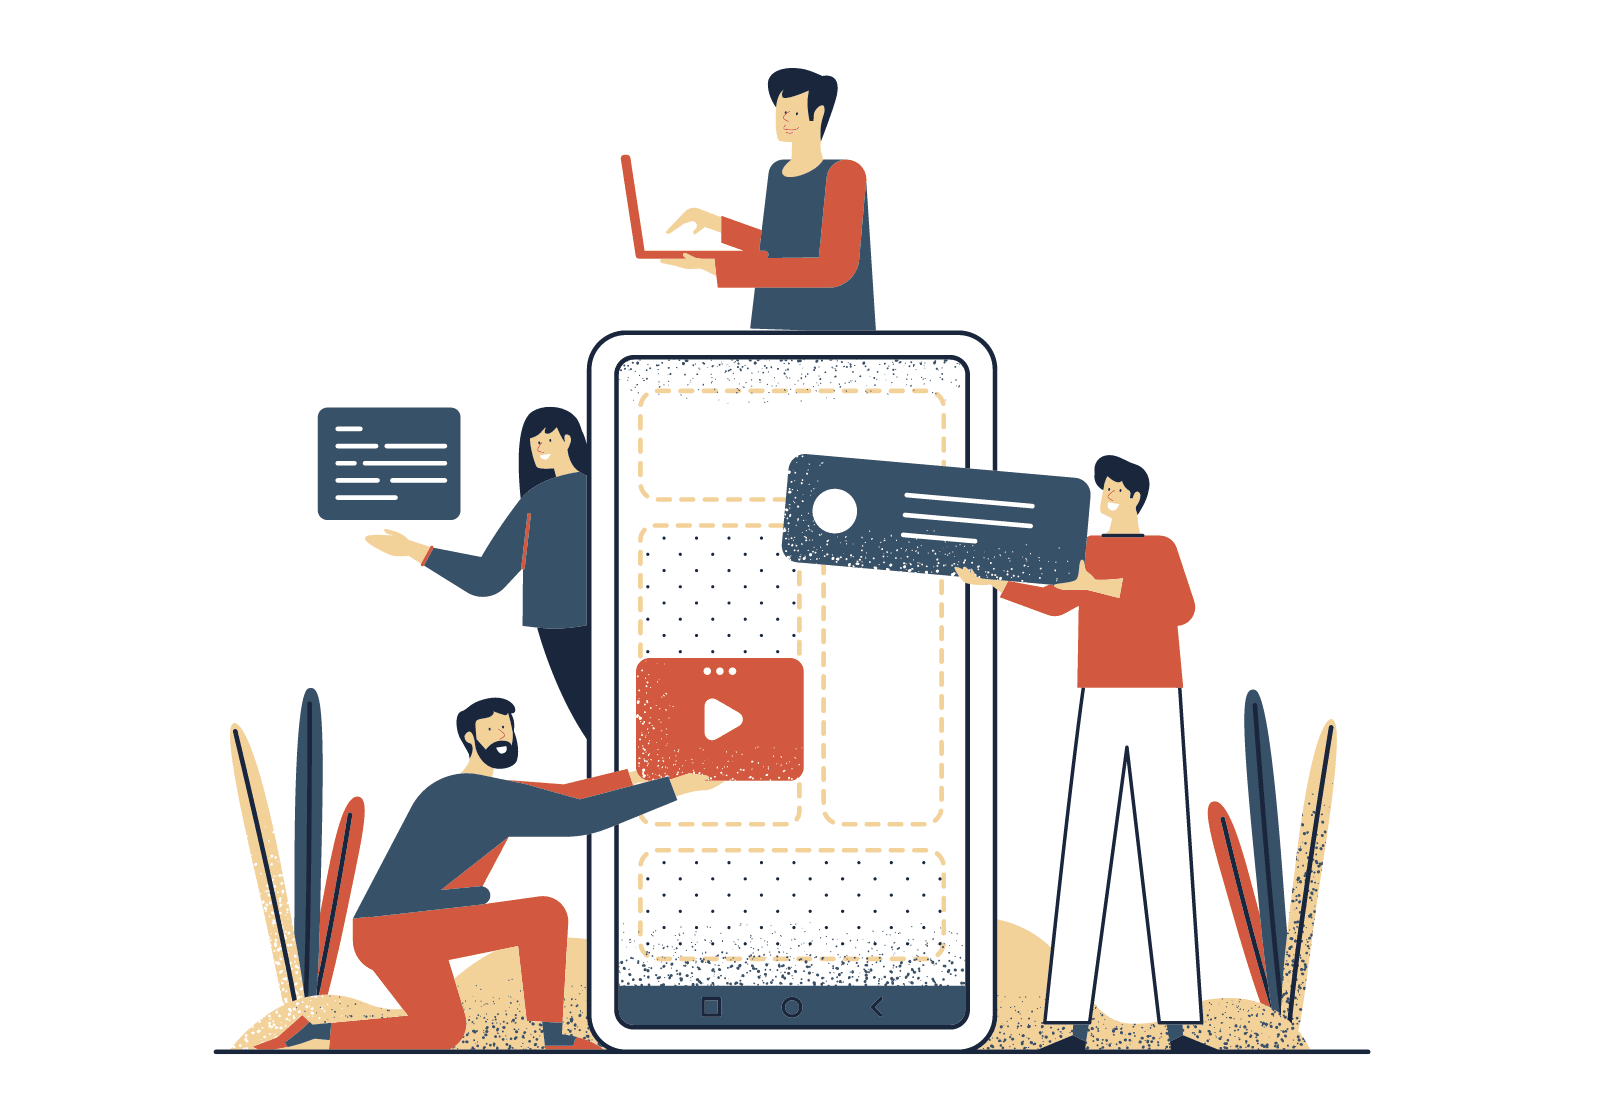 Solution 2: Open communication is the key to having a successful remote team.